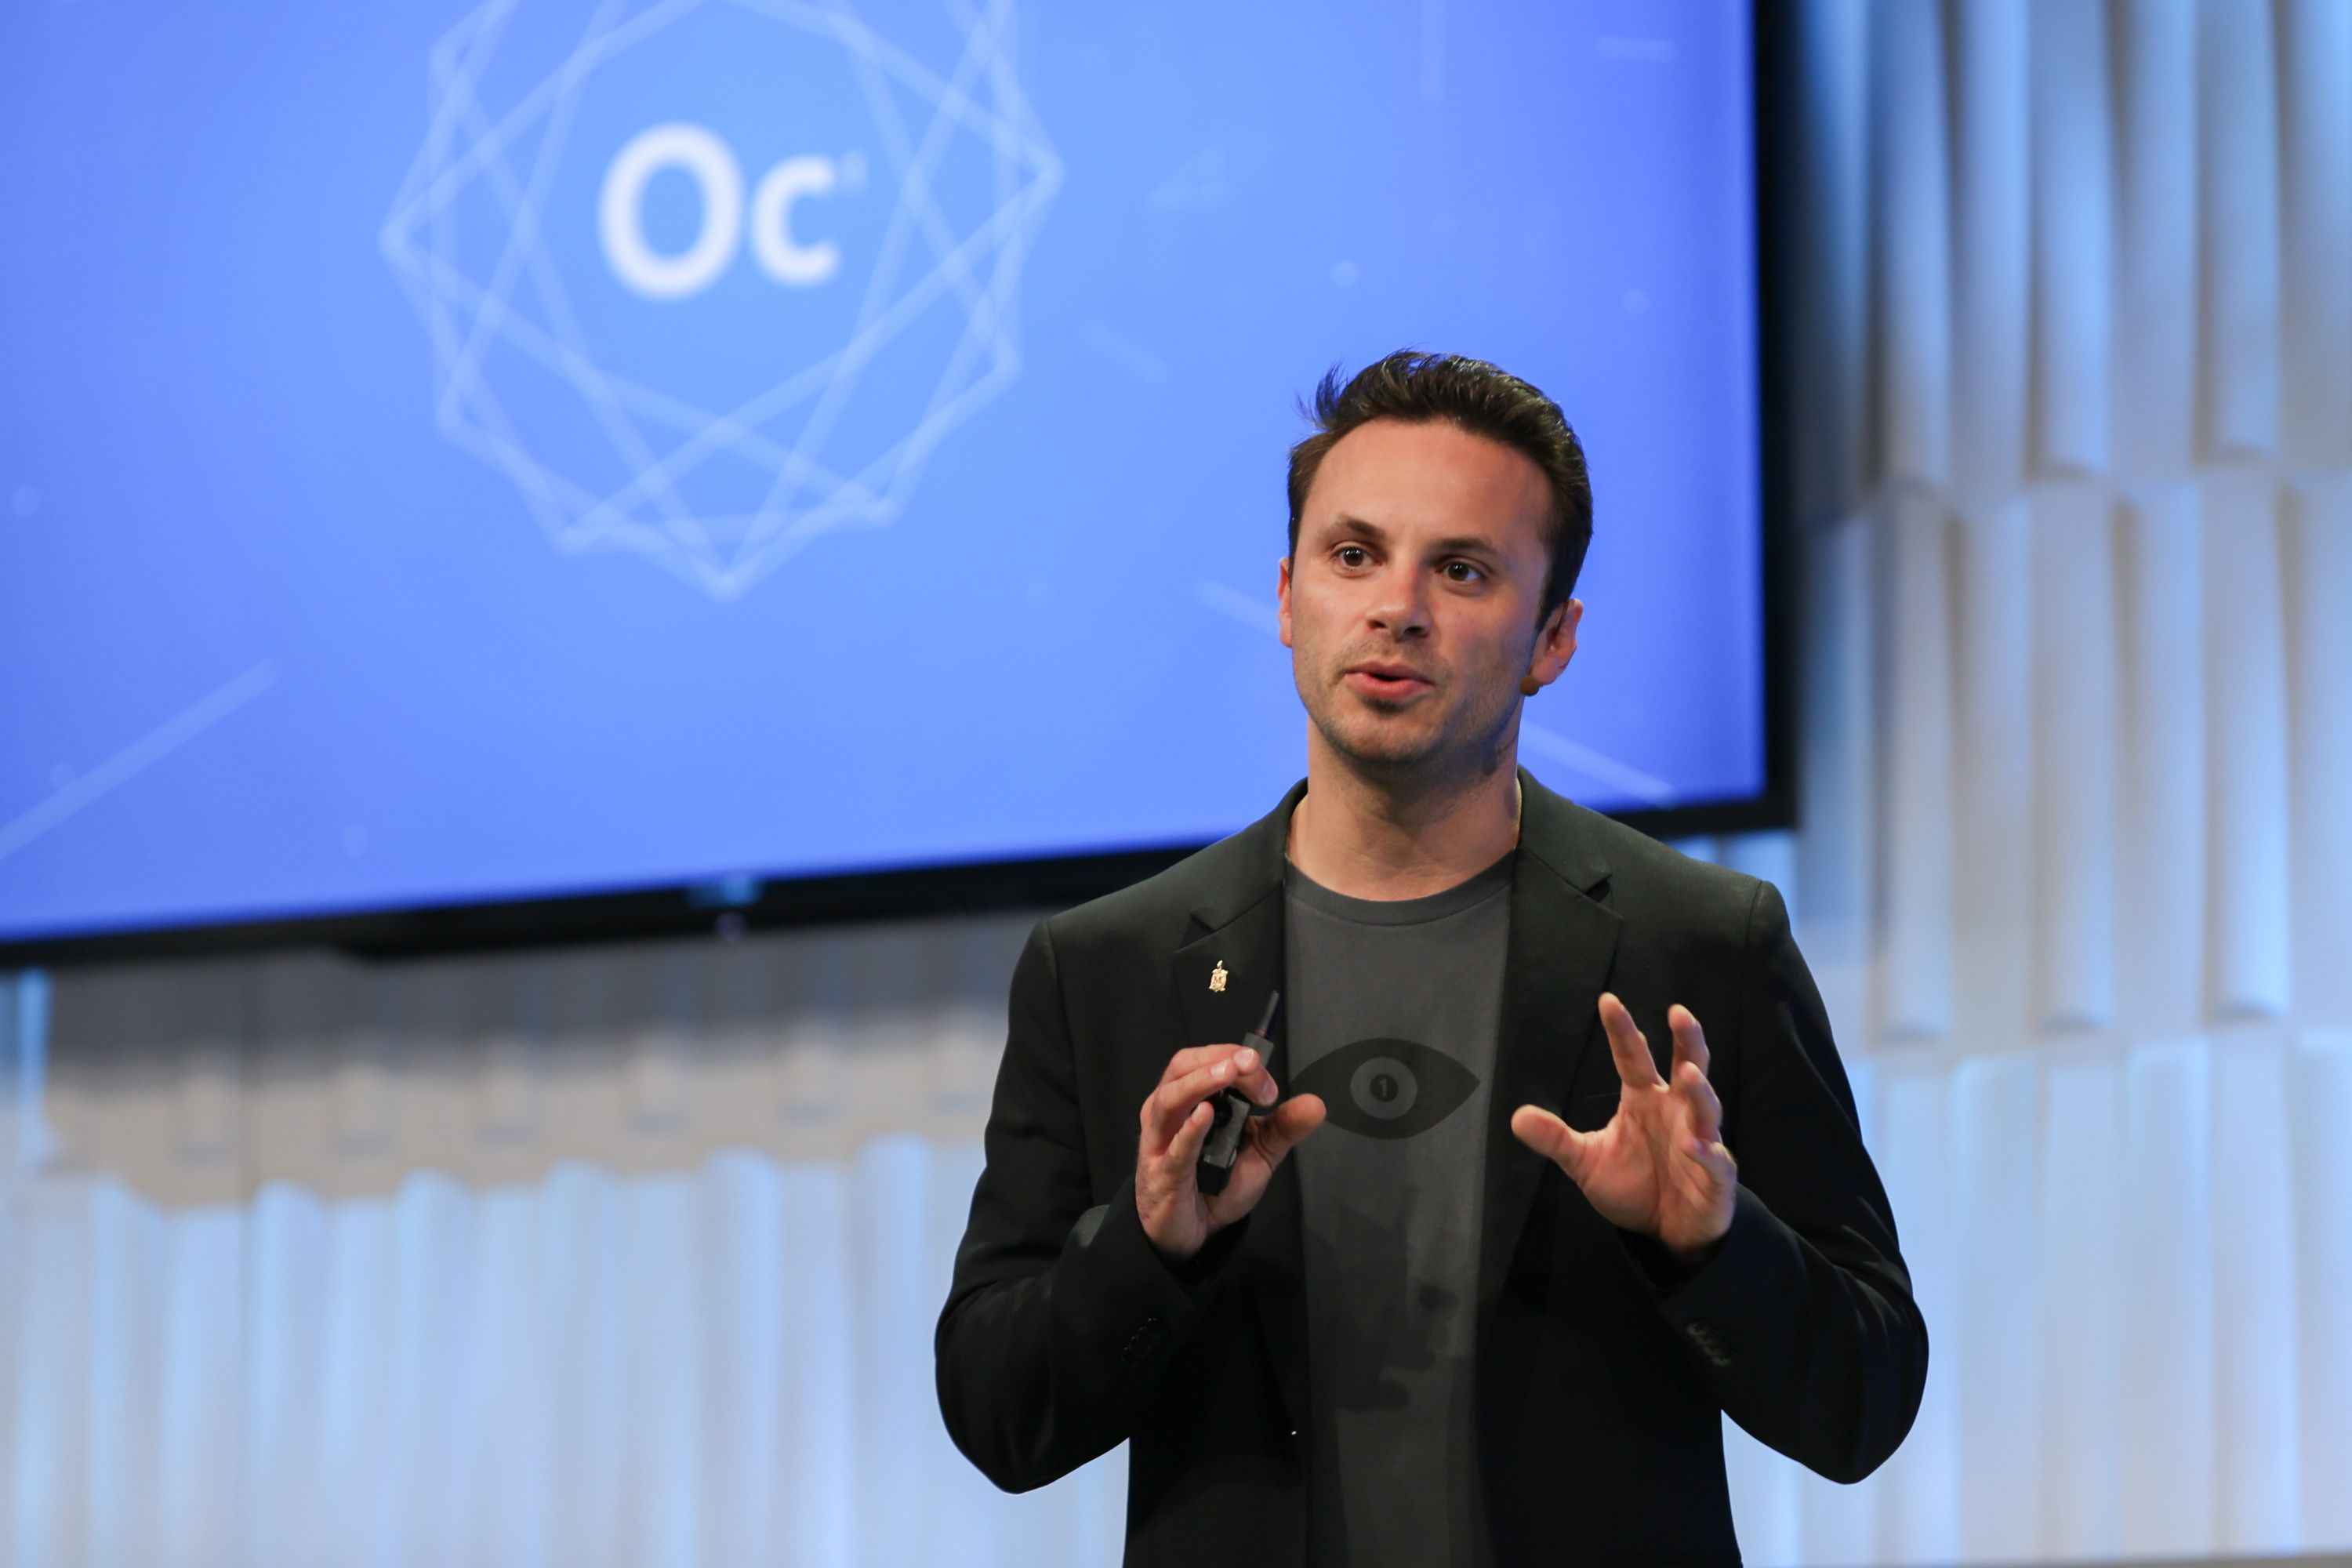 188573265b00 Google News - Oculus co-founder Brendan Iribe to leave Facebook - Overview